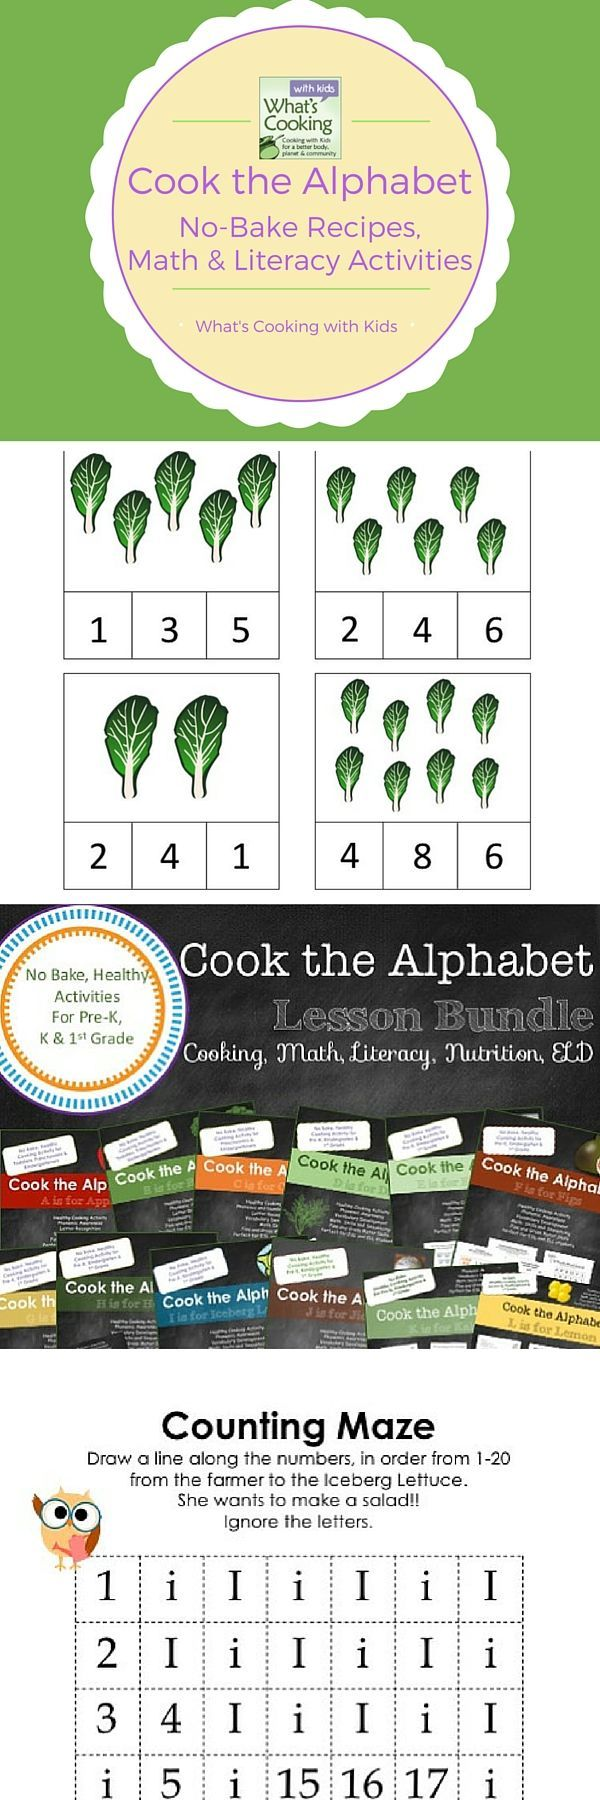 Cook the Alphabet: A to Z Growing Lesson Bundle